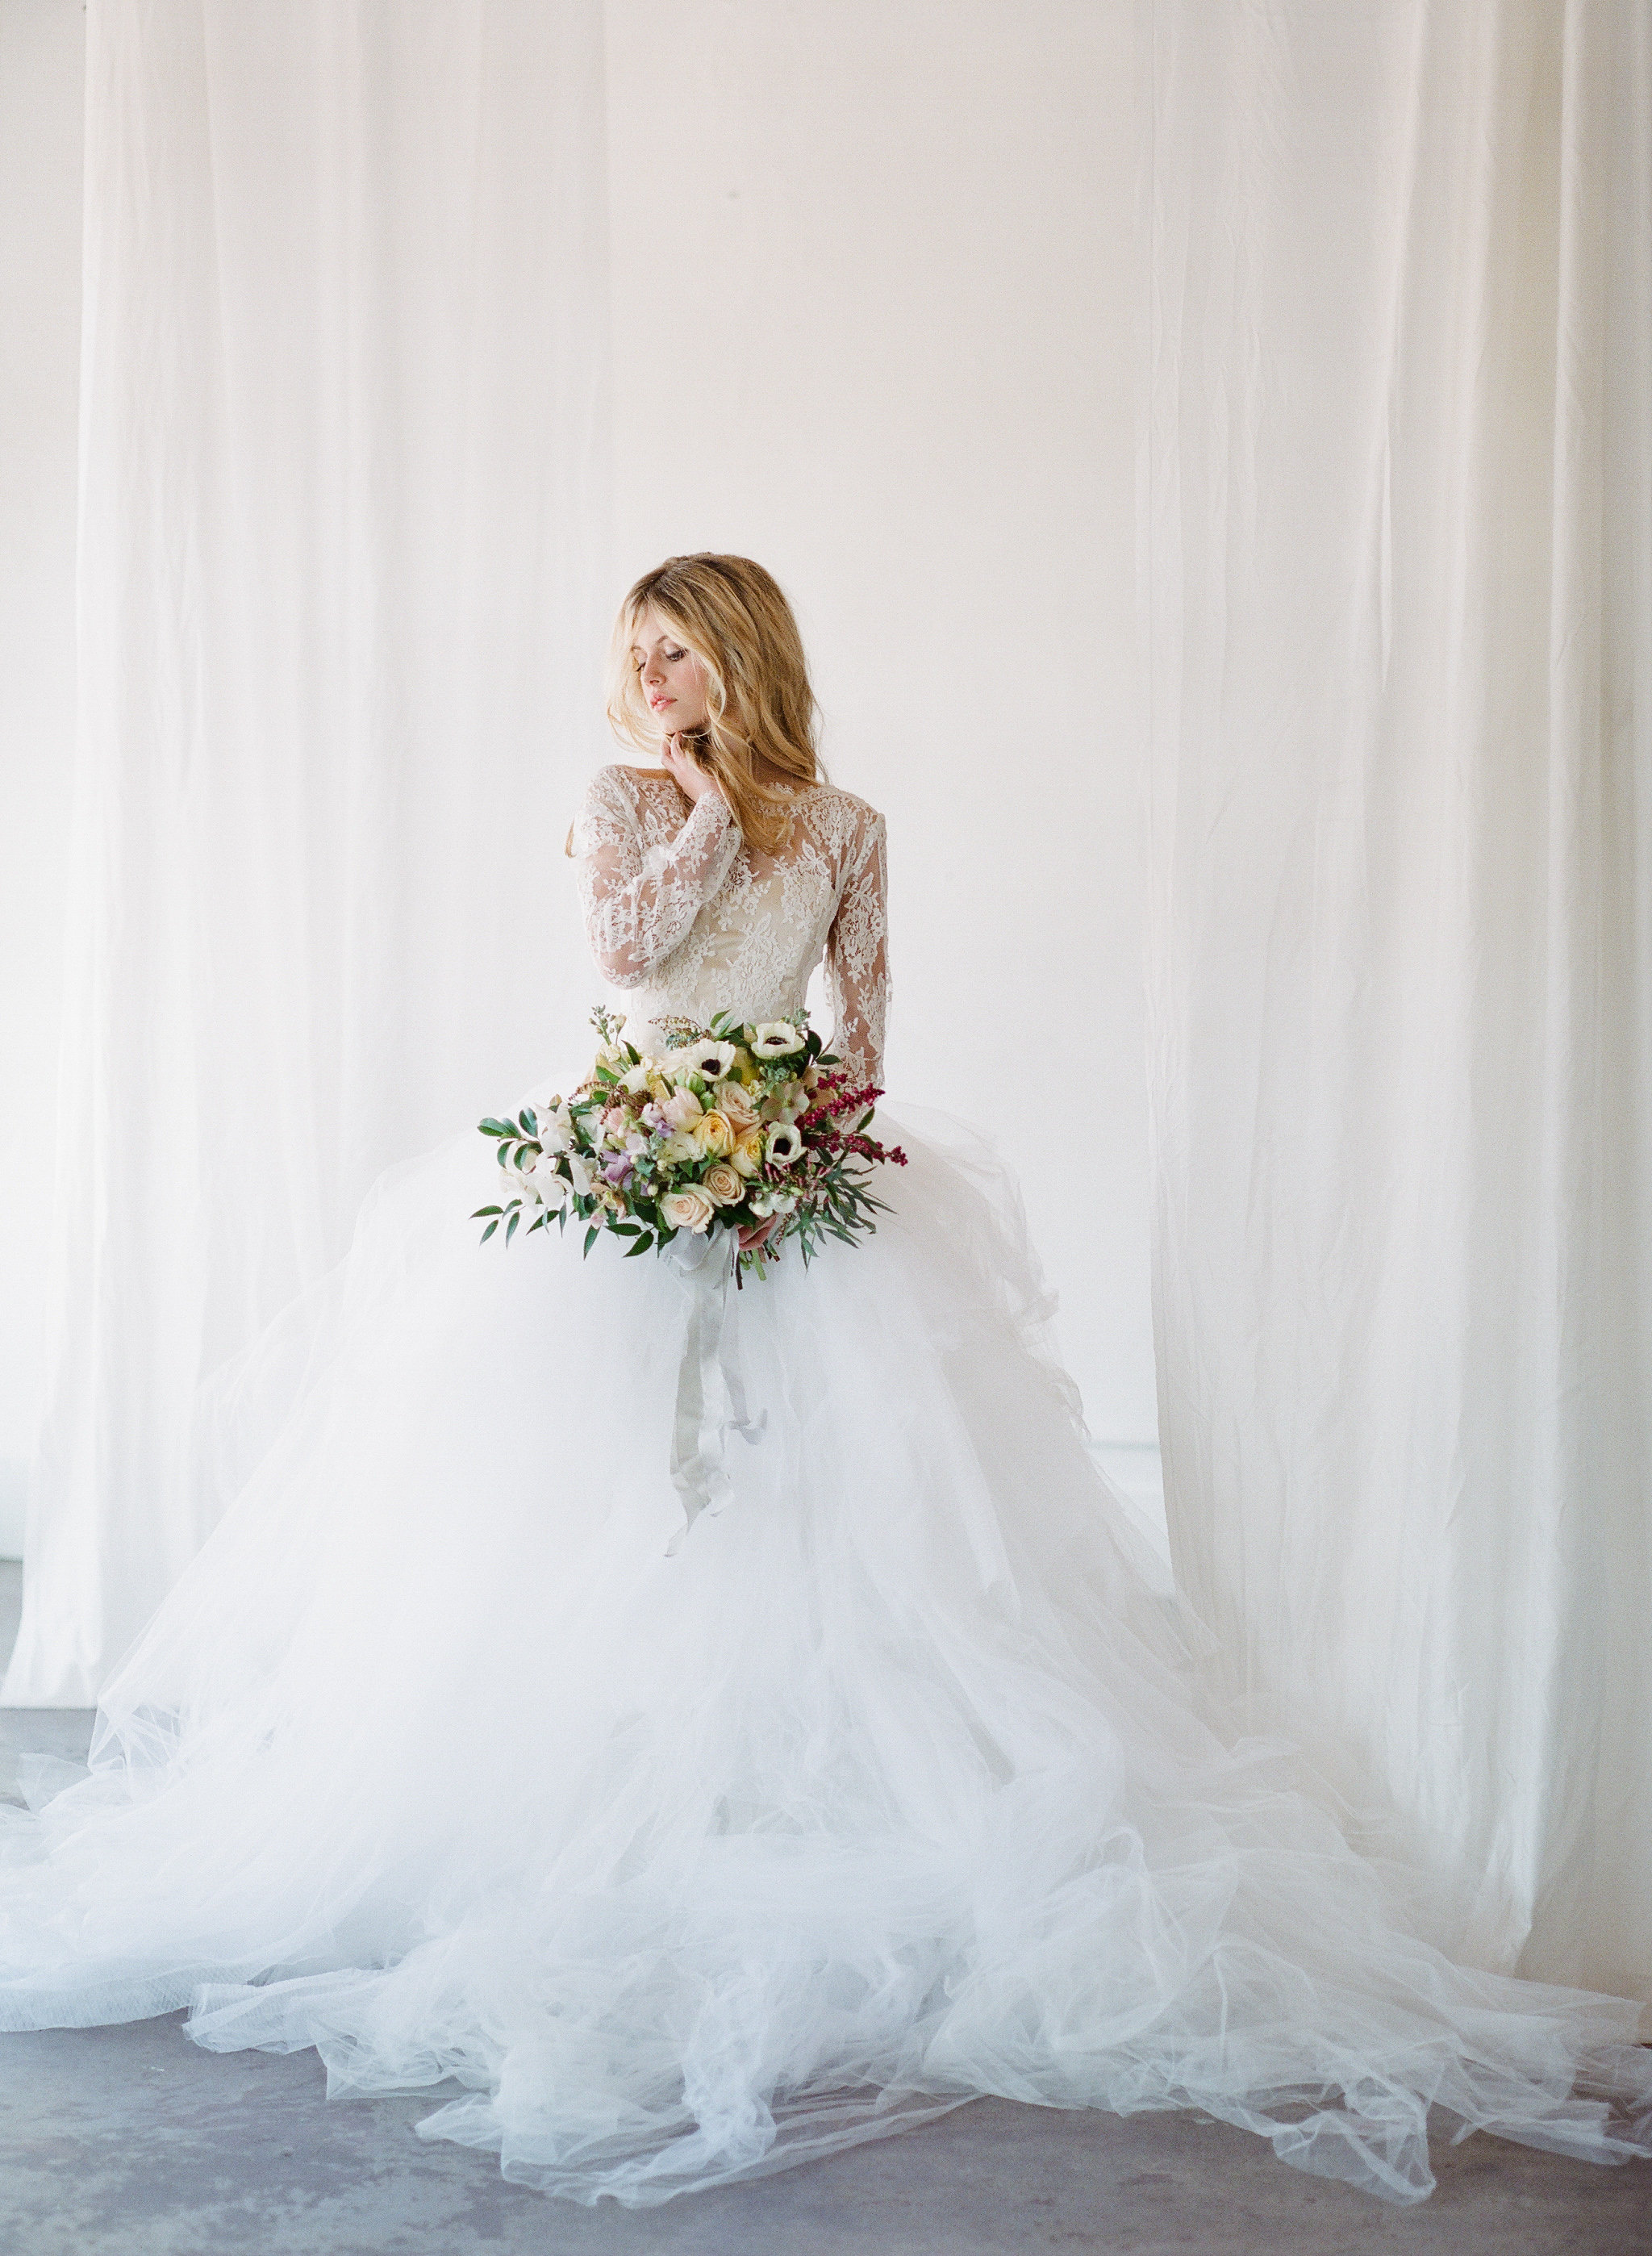 Styled Shoot at Ardor-0097.jpg